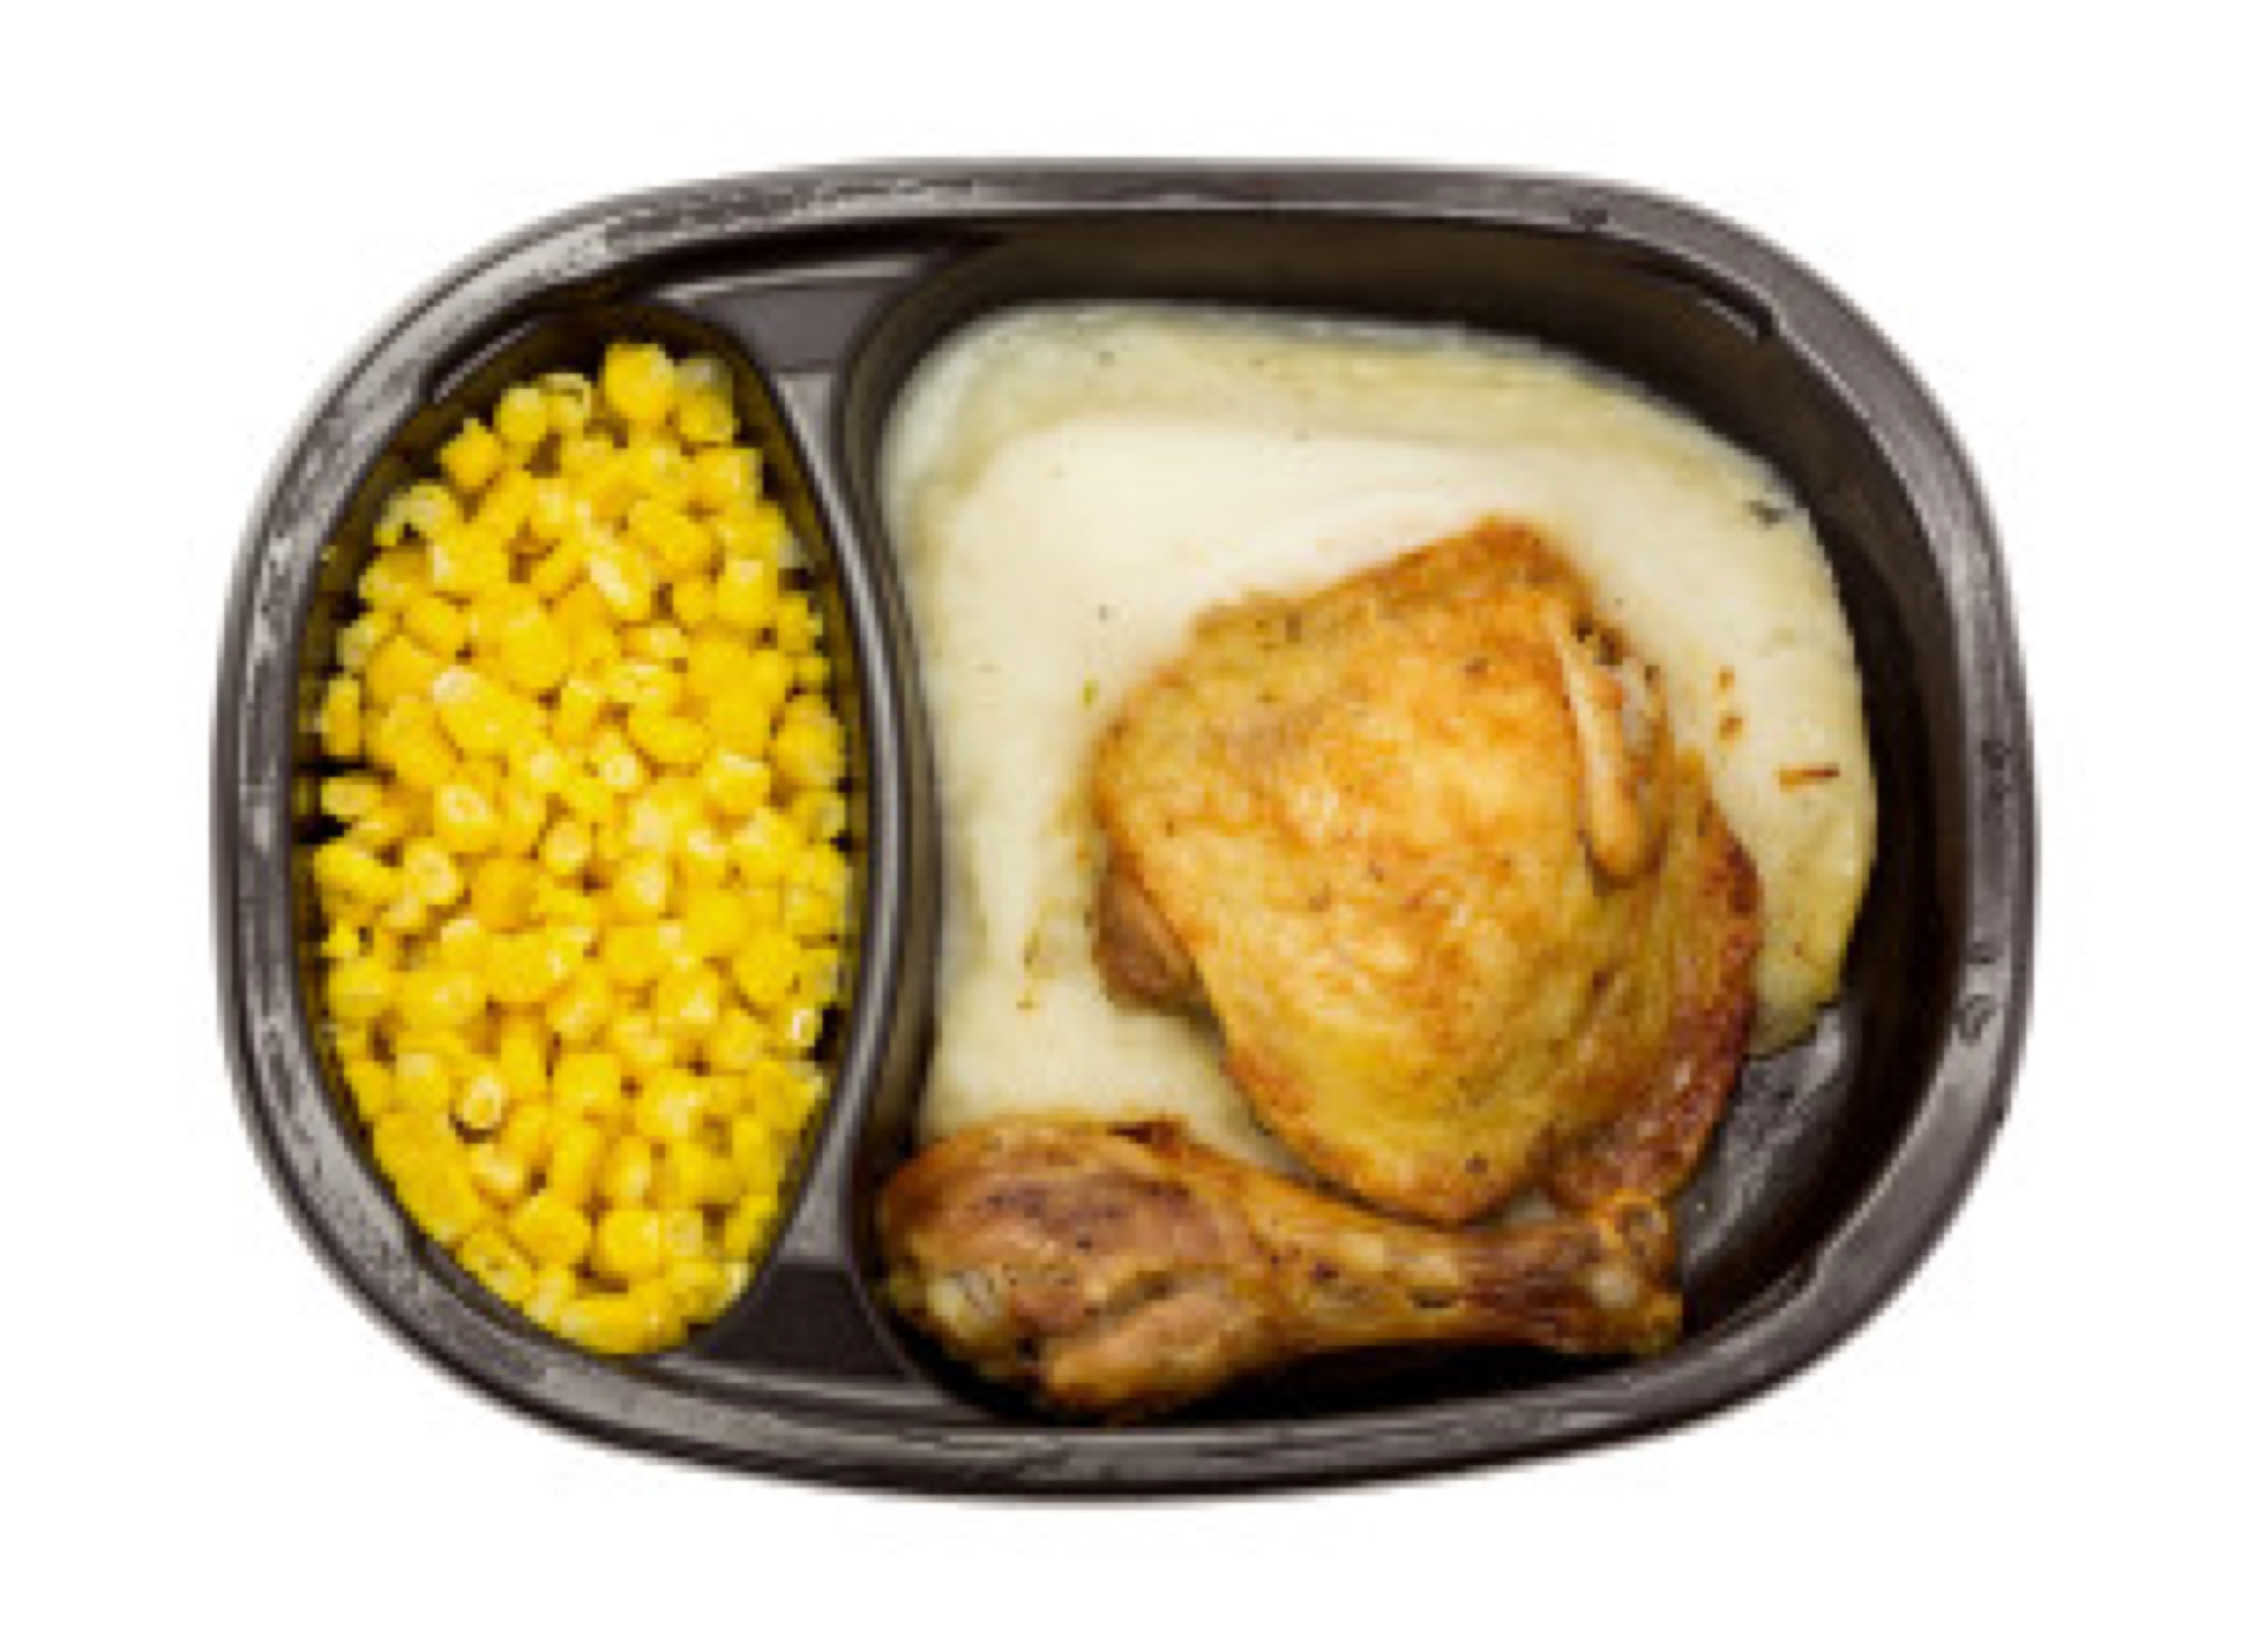 A top view of a frozen TV dinner on a white background.